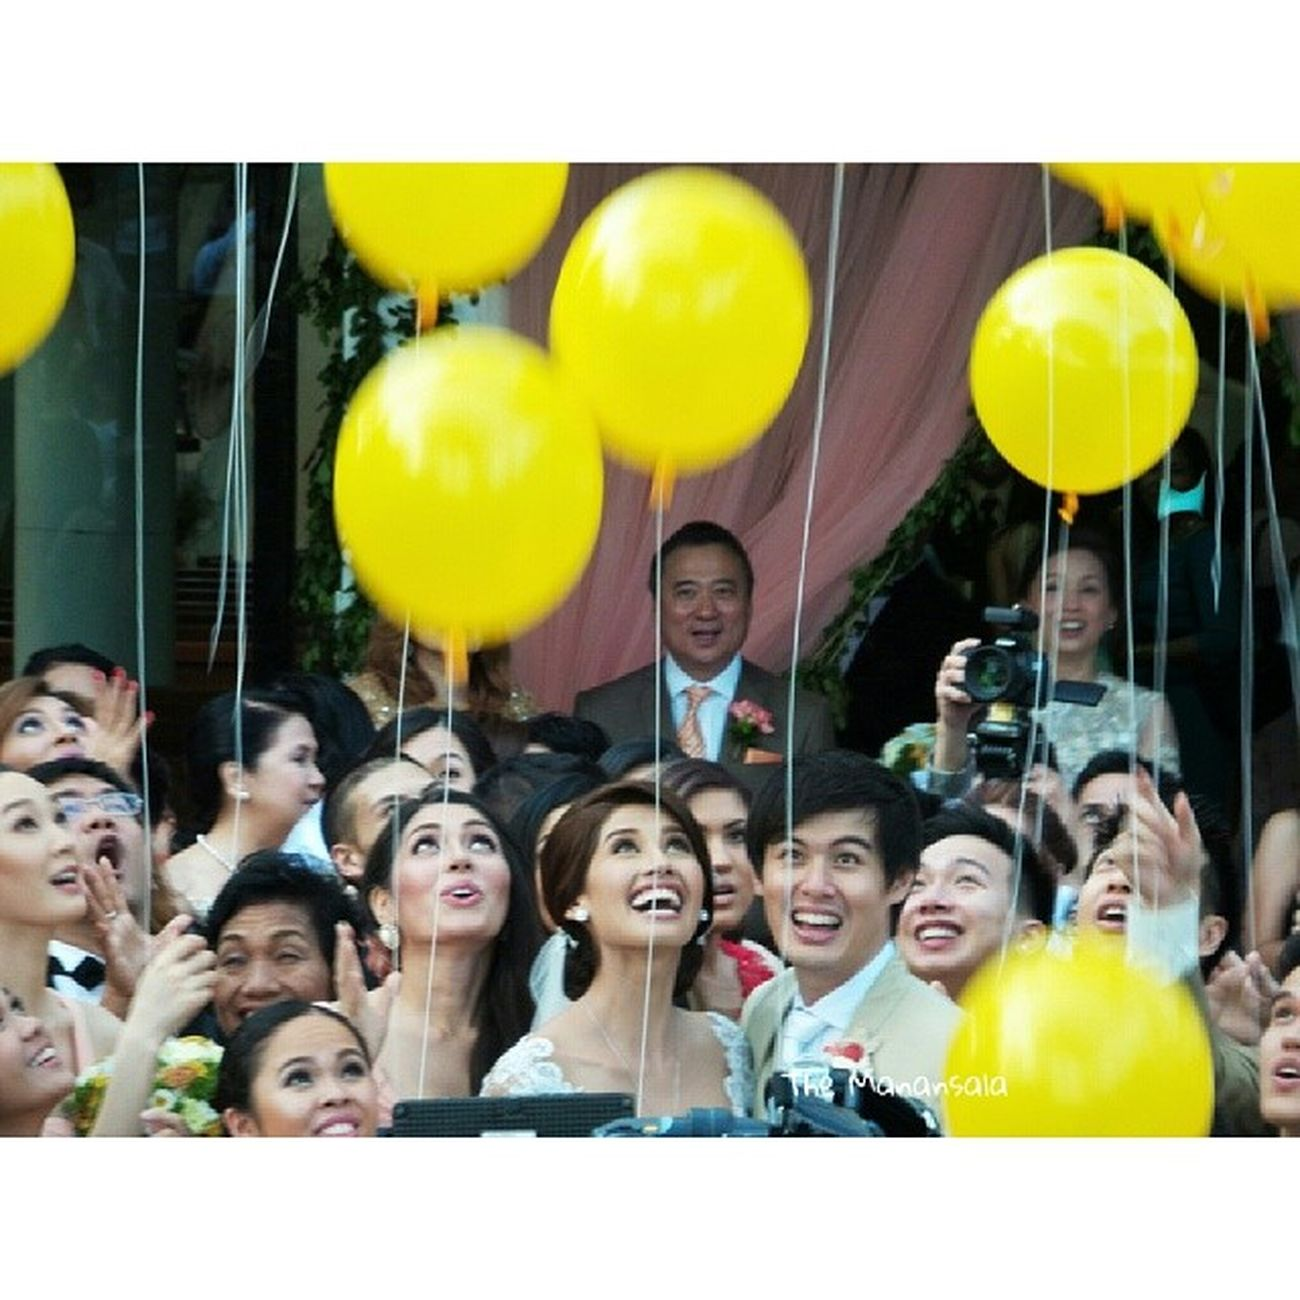 The Universe Wedding of the Year || Mr. and Mrs. Lloyd and Shamcey Lee @supsupshamcey @lloydtylee Thewedding Shamceysupsup ShamceyLloydWedding2013 Themanansala spotlight